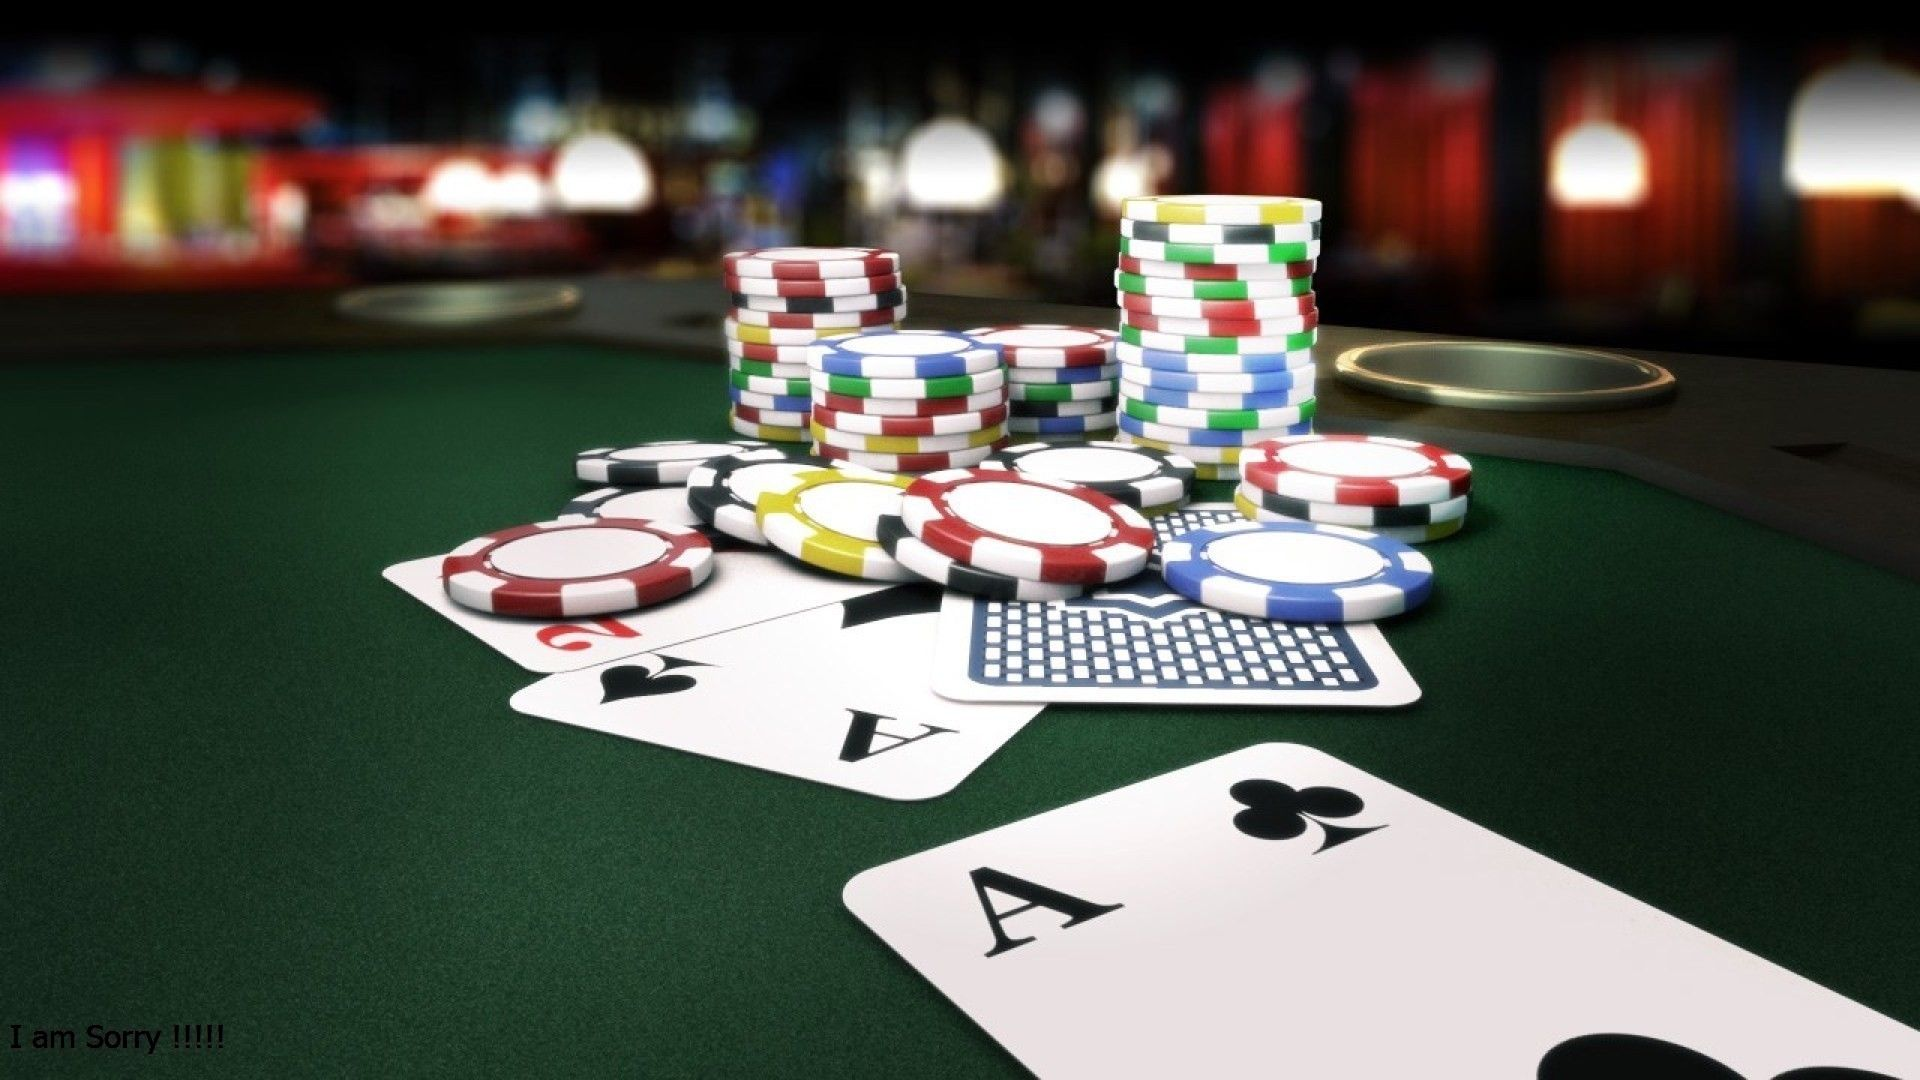 Football broker to help together with football online gambling